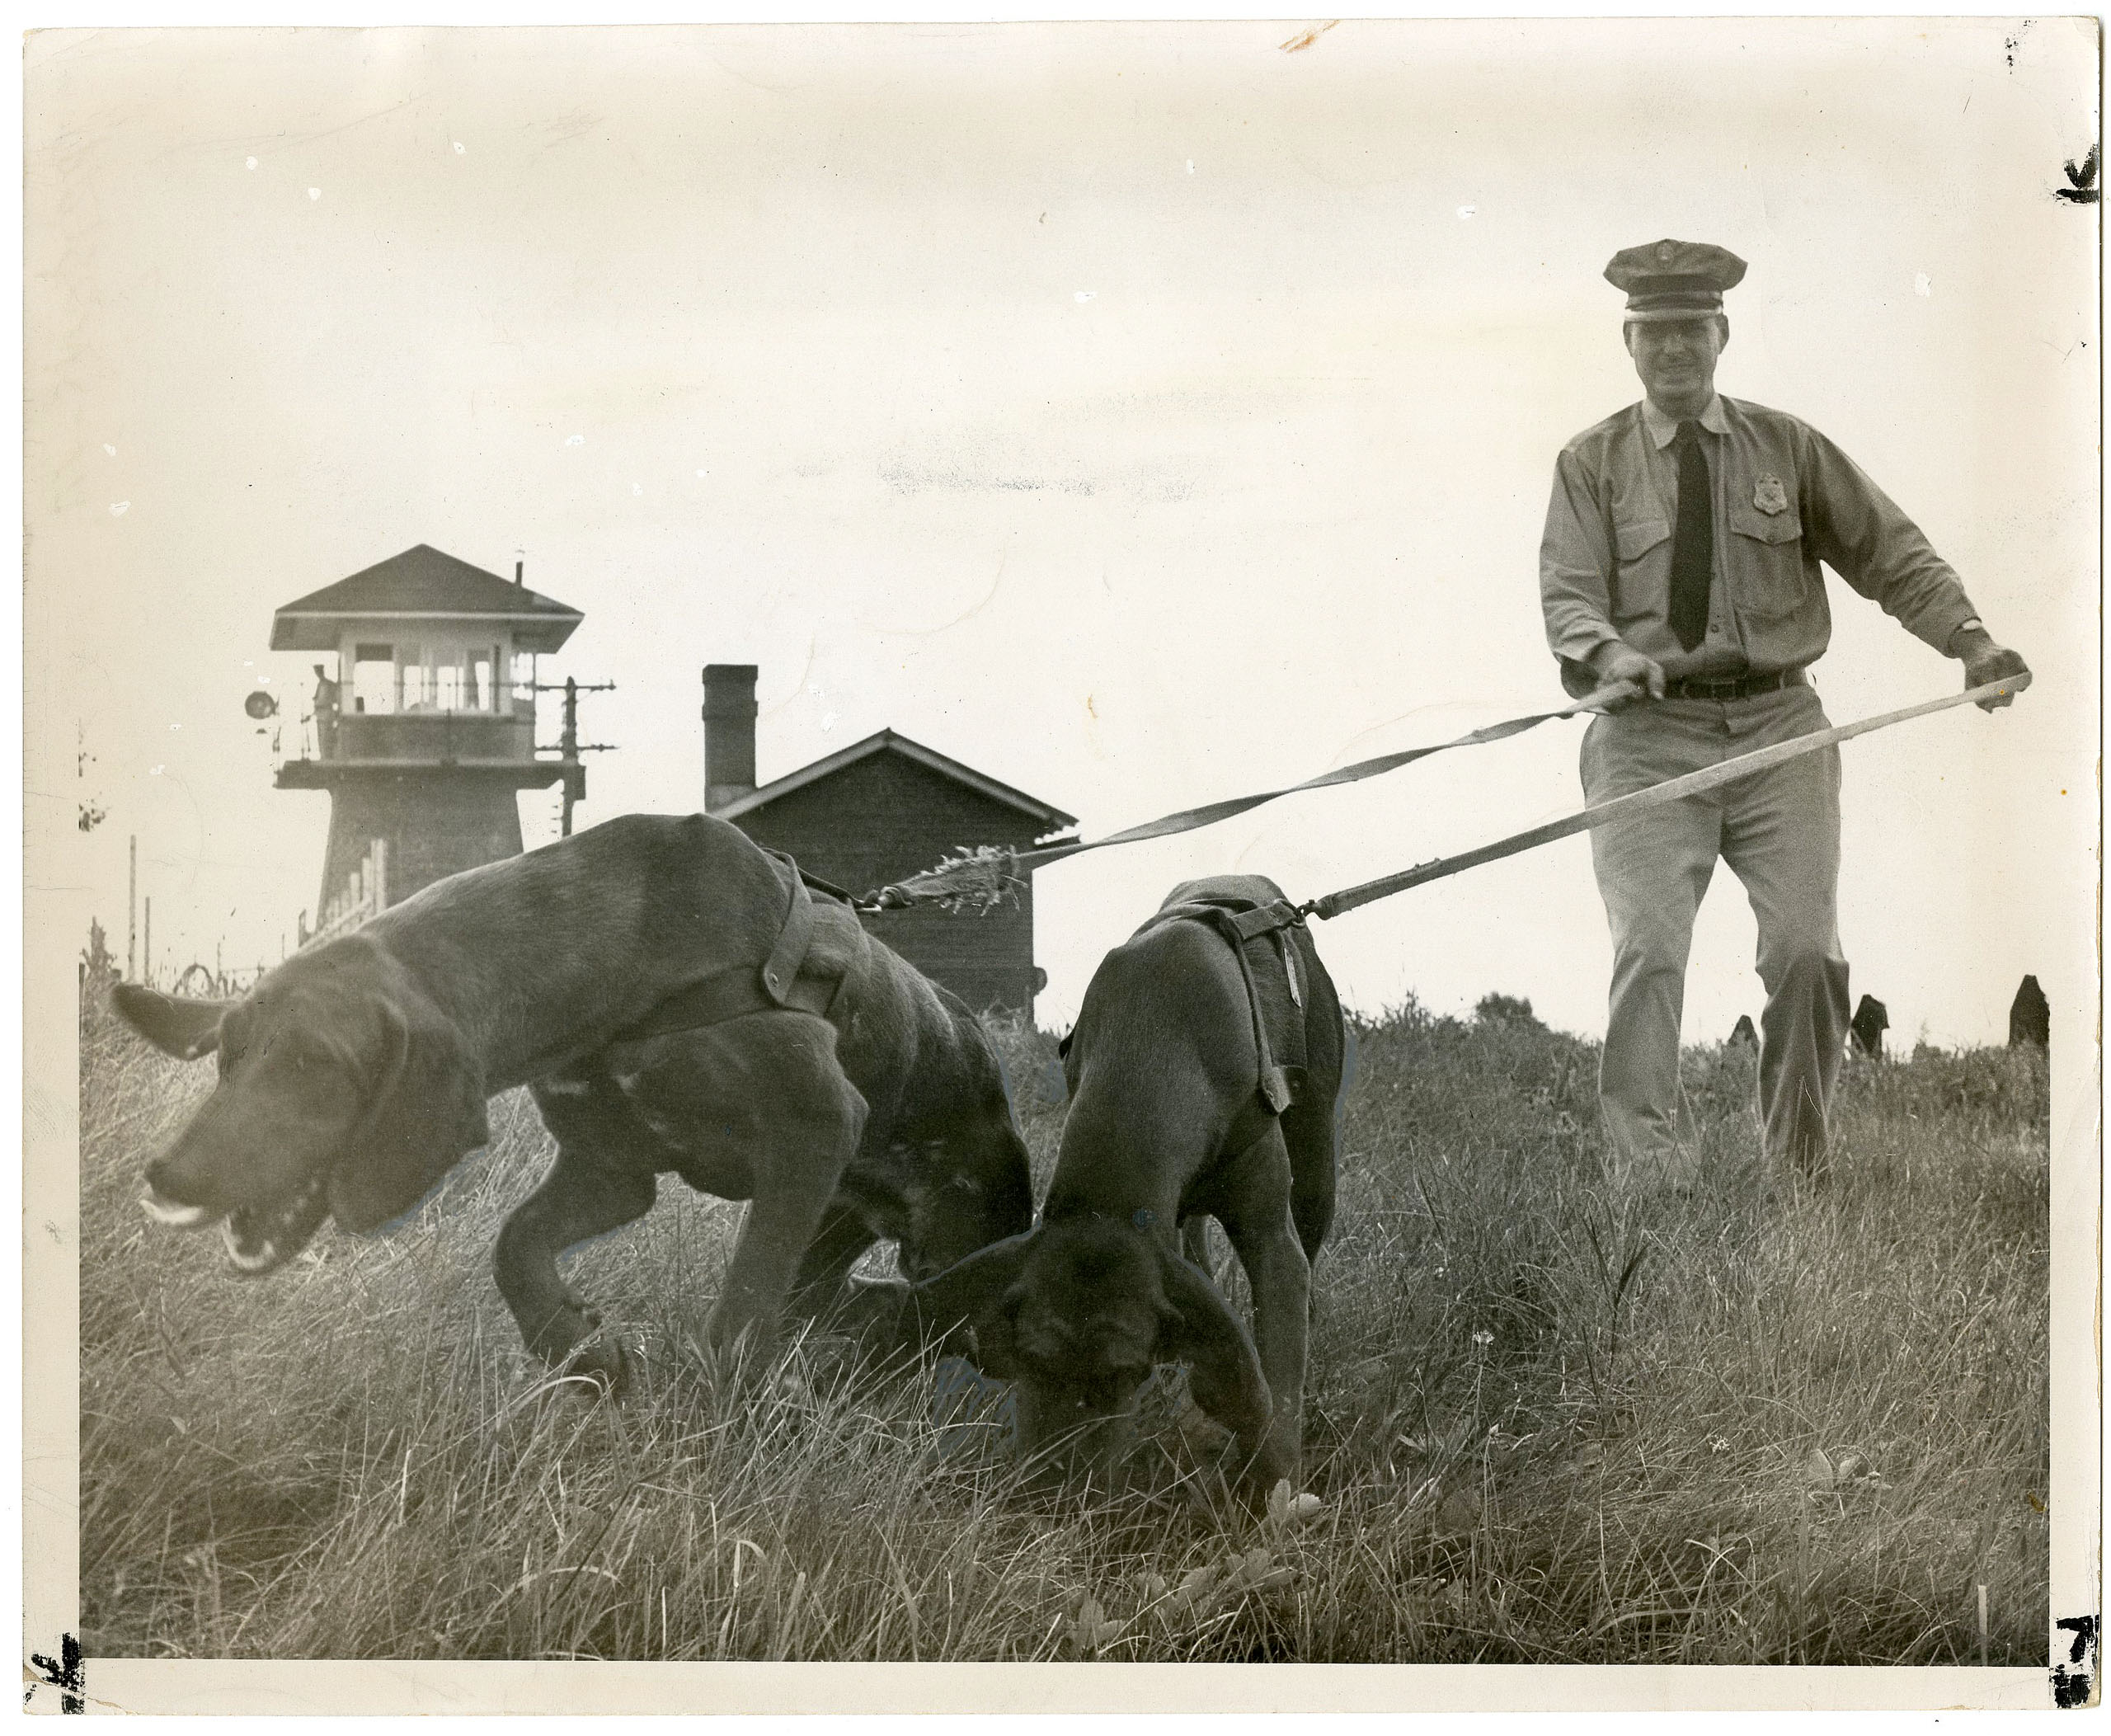 Despite Theodore Roosevelt's initial vision for the land to function as a bucolic working farm that showed prisoners the value of a hard day's work and provided the opportunity to learn a trade, it evolved into Lorton Prison, one of the nation's most notorious lockups. Photo: Courtesy of The D.C. Public Library